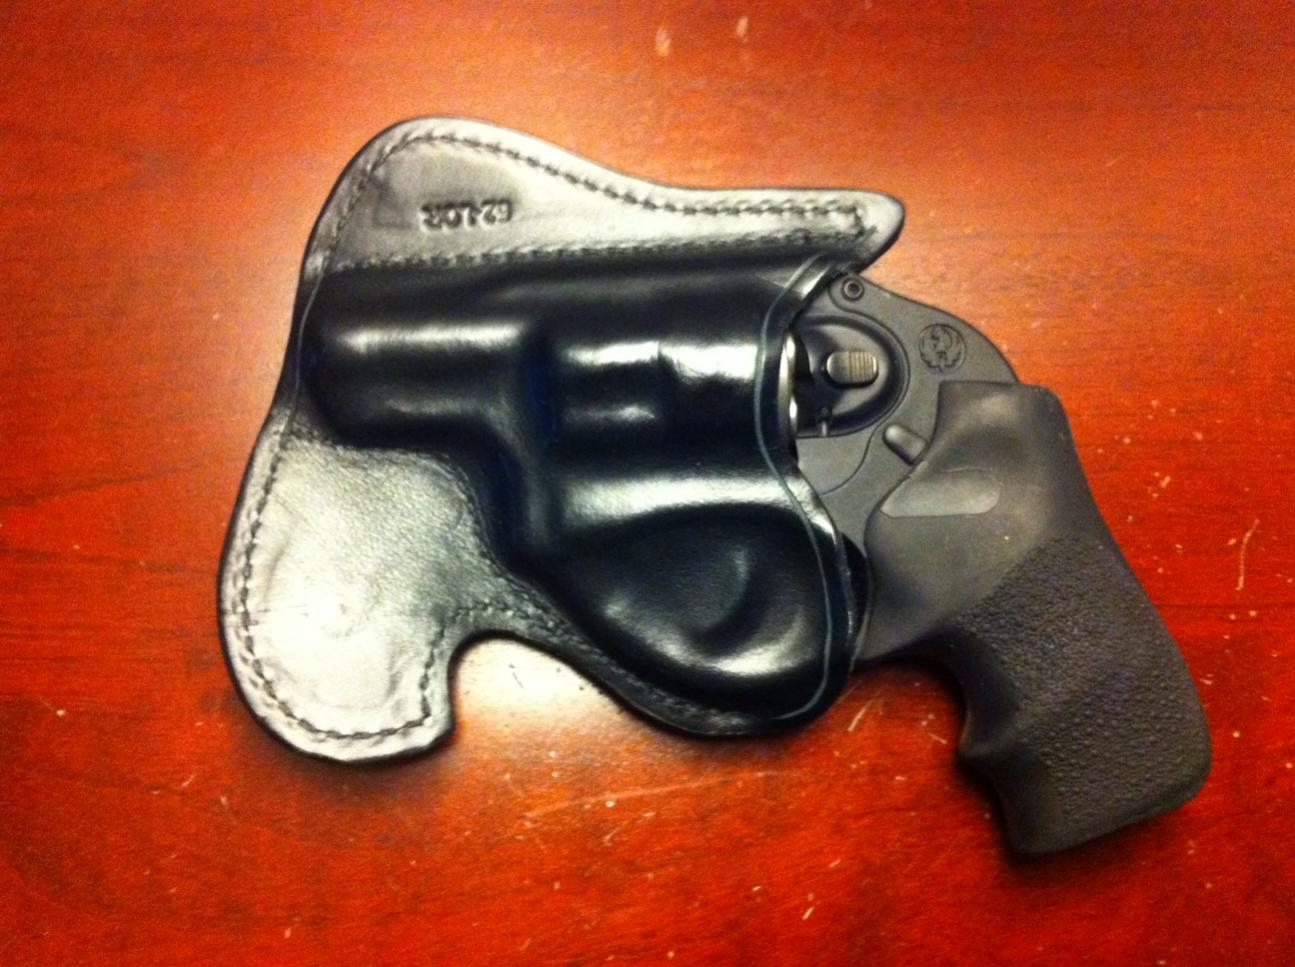 Pocket Holster Review for Ruger LCR-photo-24-.jpg